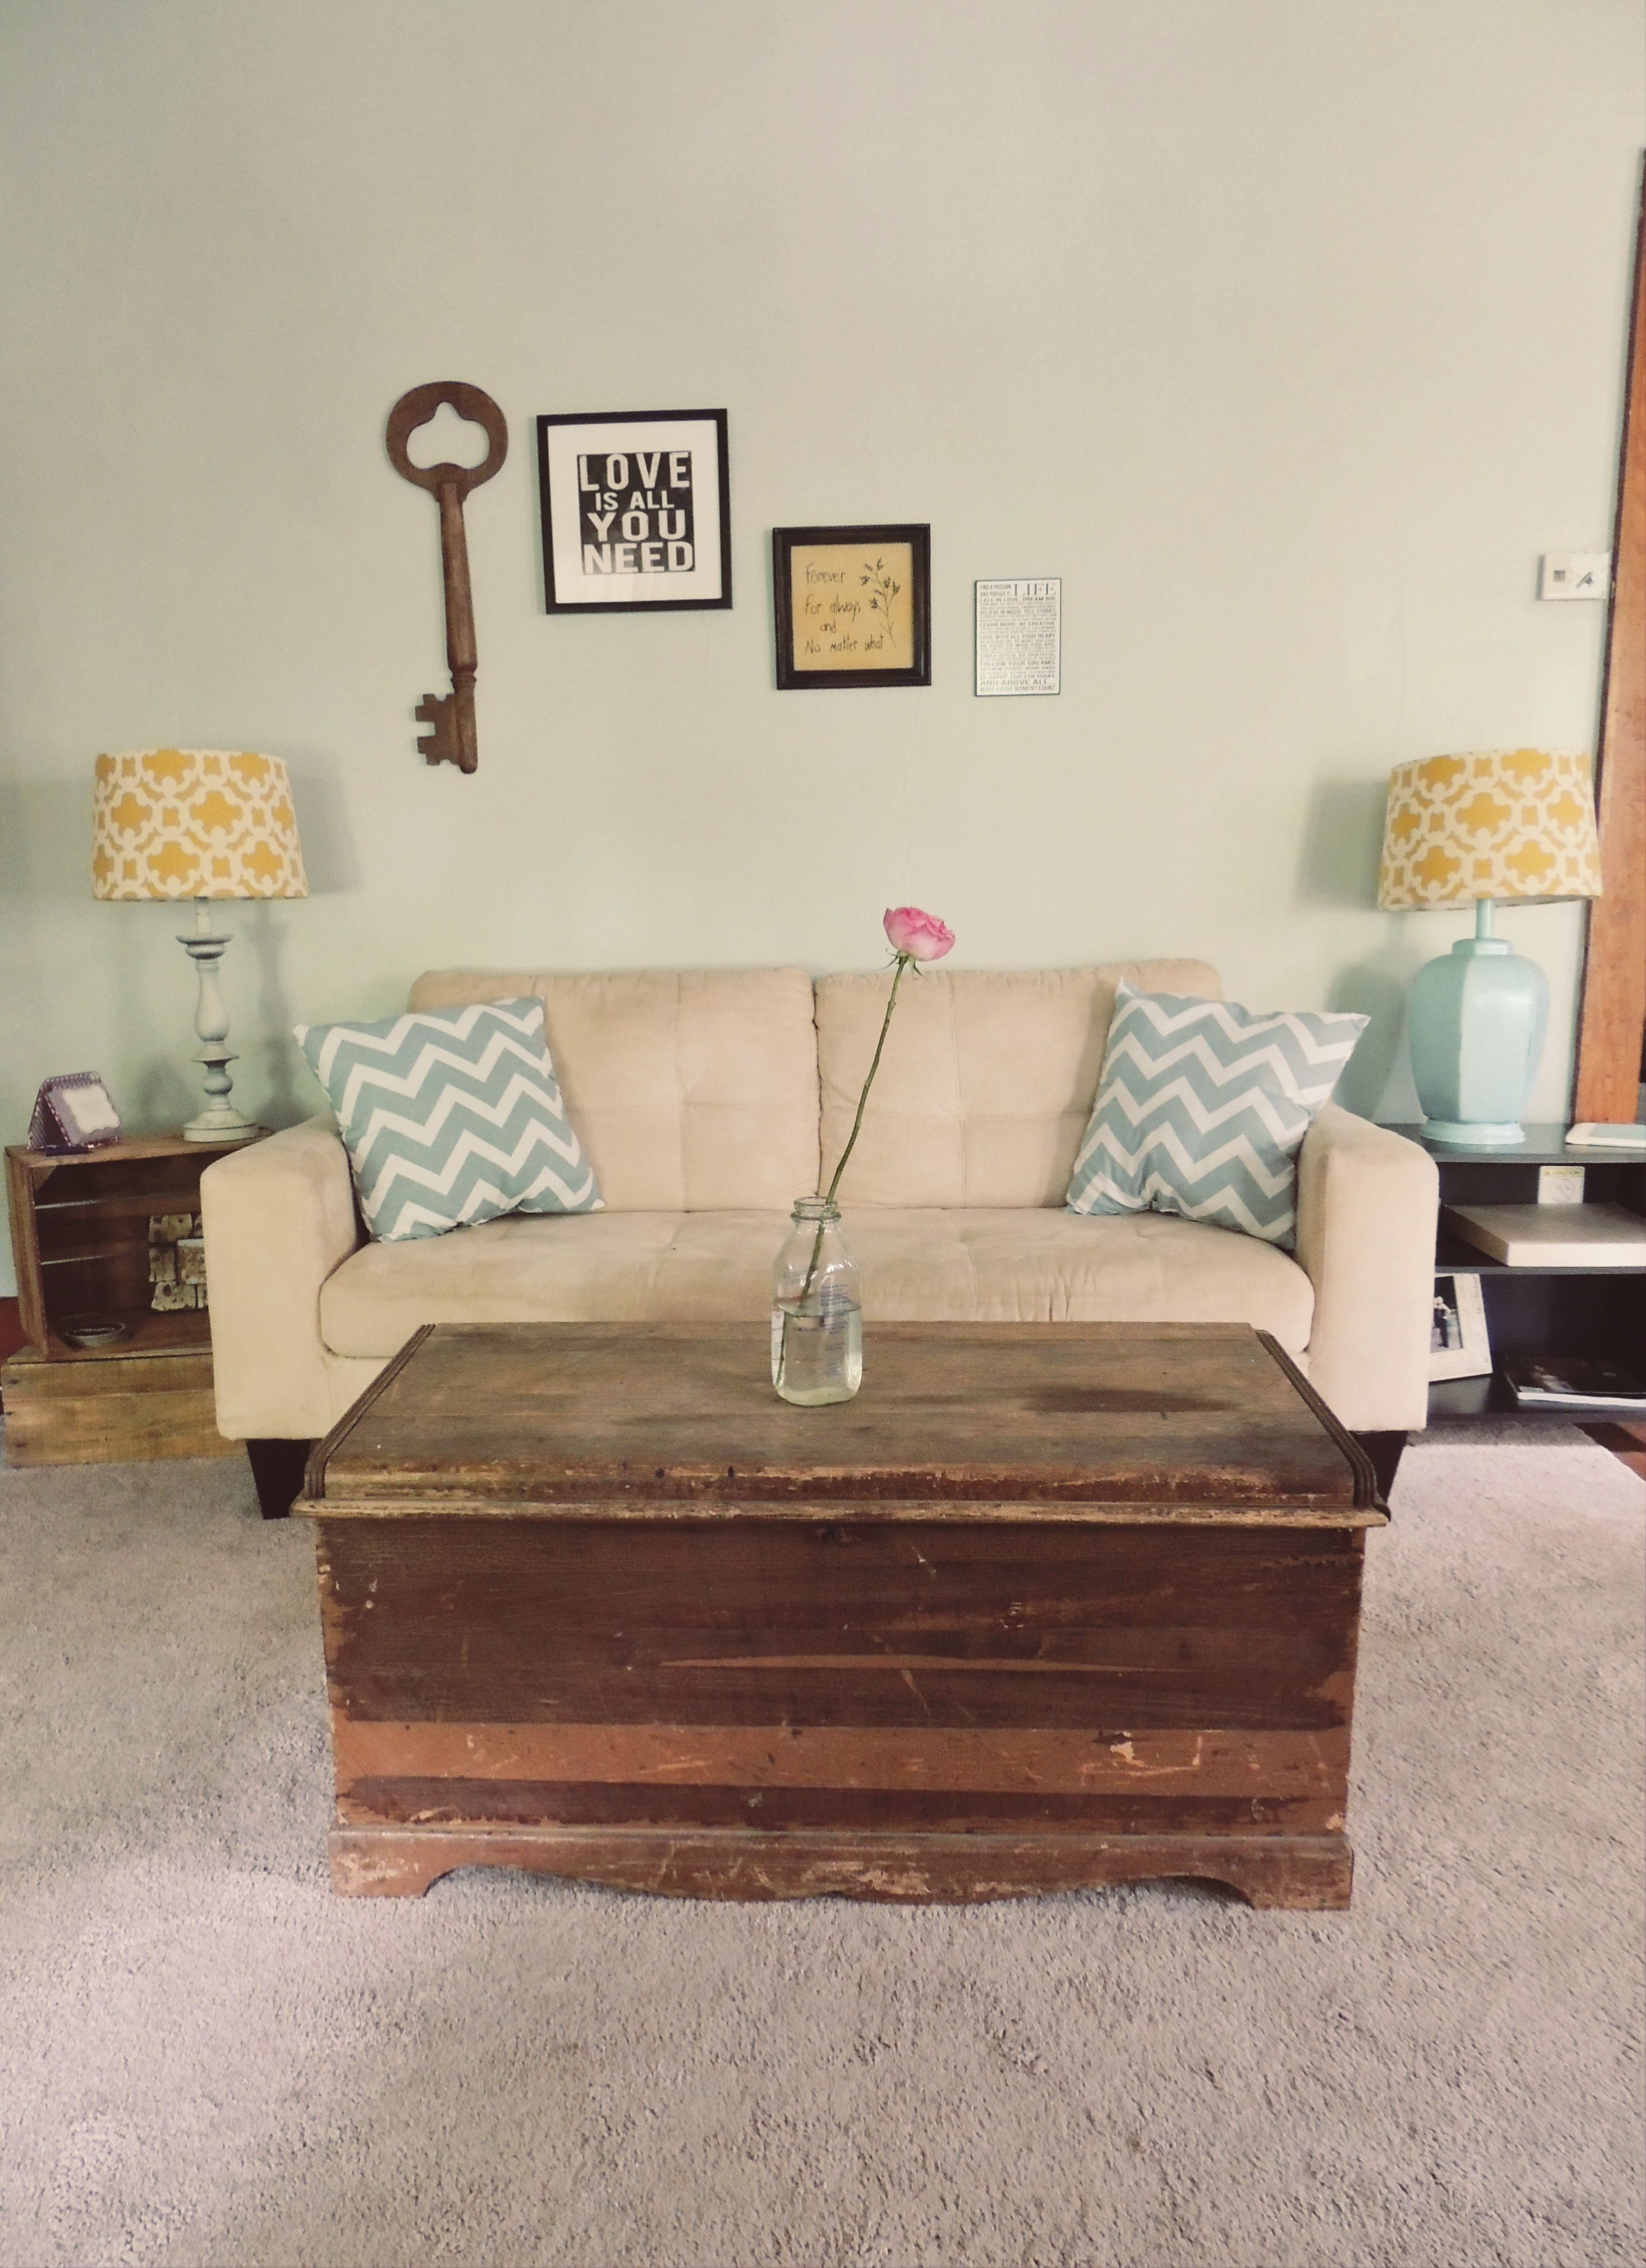 My Little Home Of All Used & Repurposed Furniture (Minus